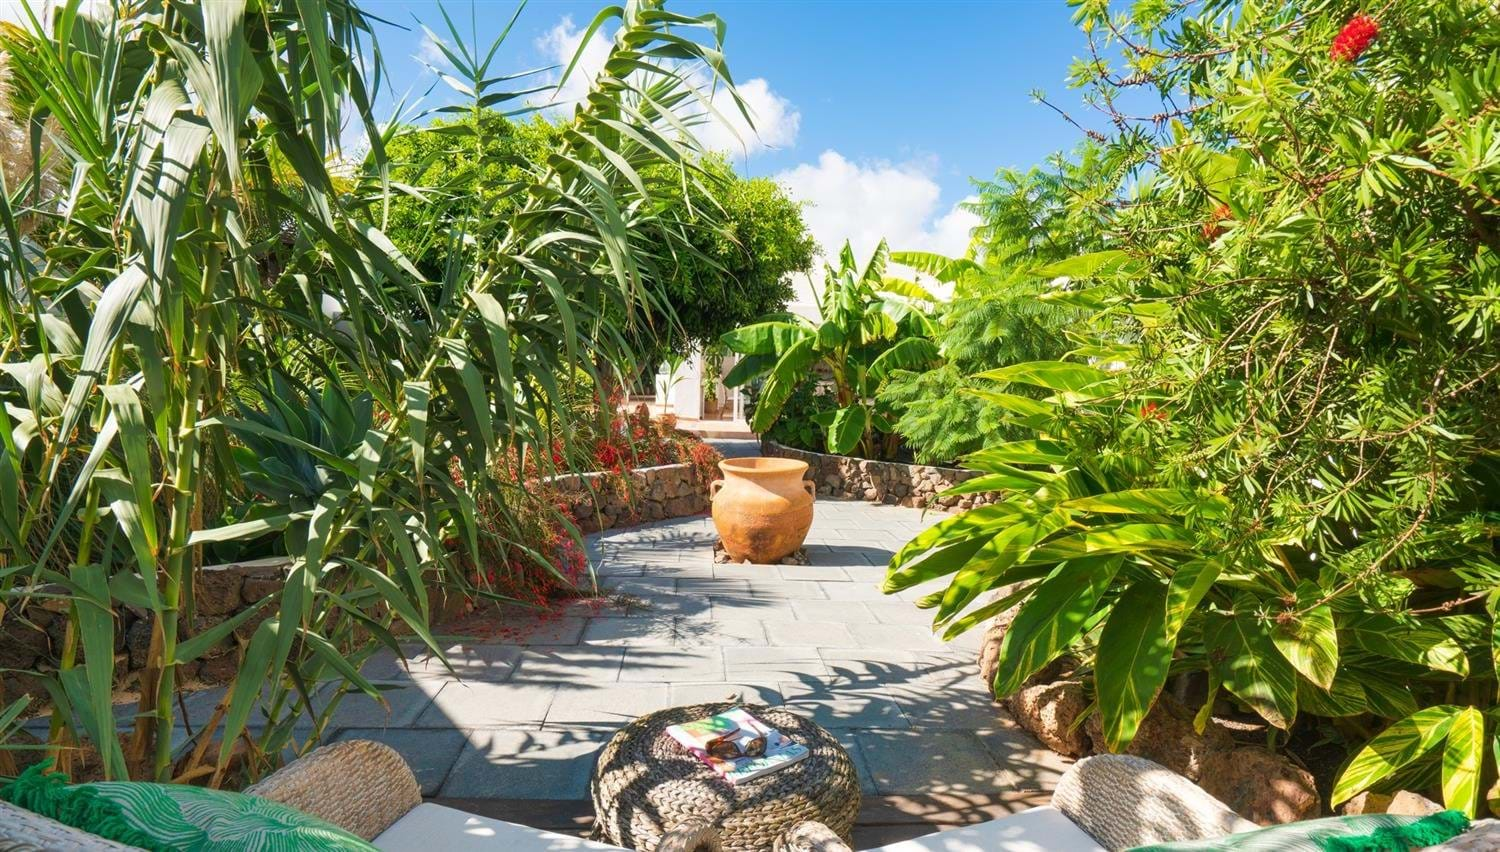 Views of palms and bananas in The Secret Garden Villa at Finca Botanico, Lanzarote